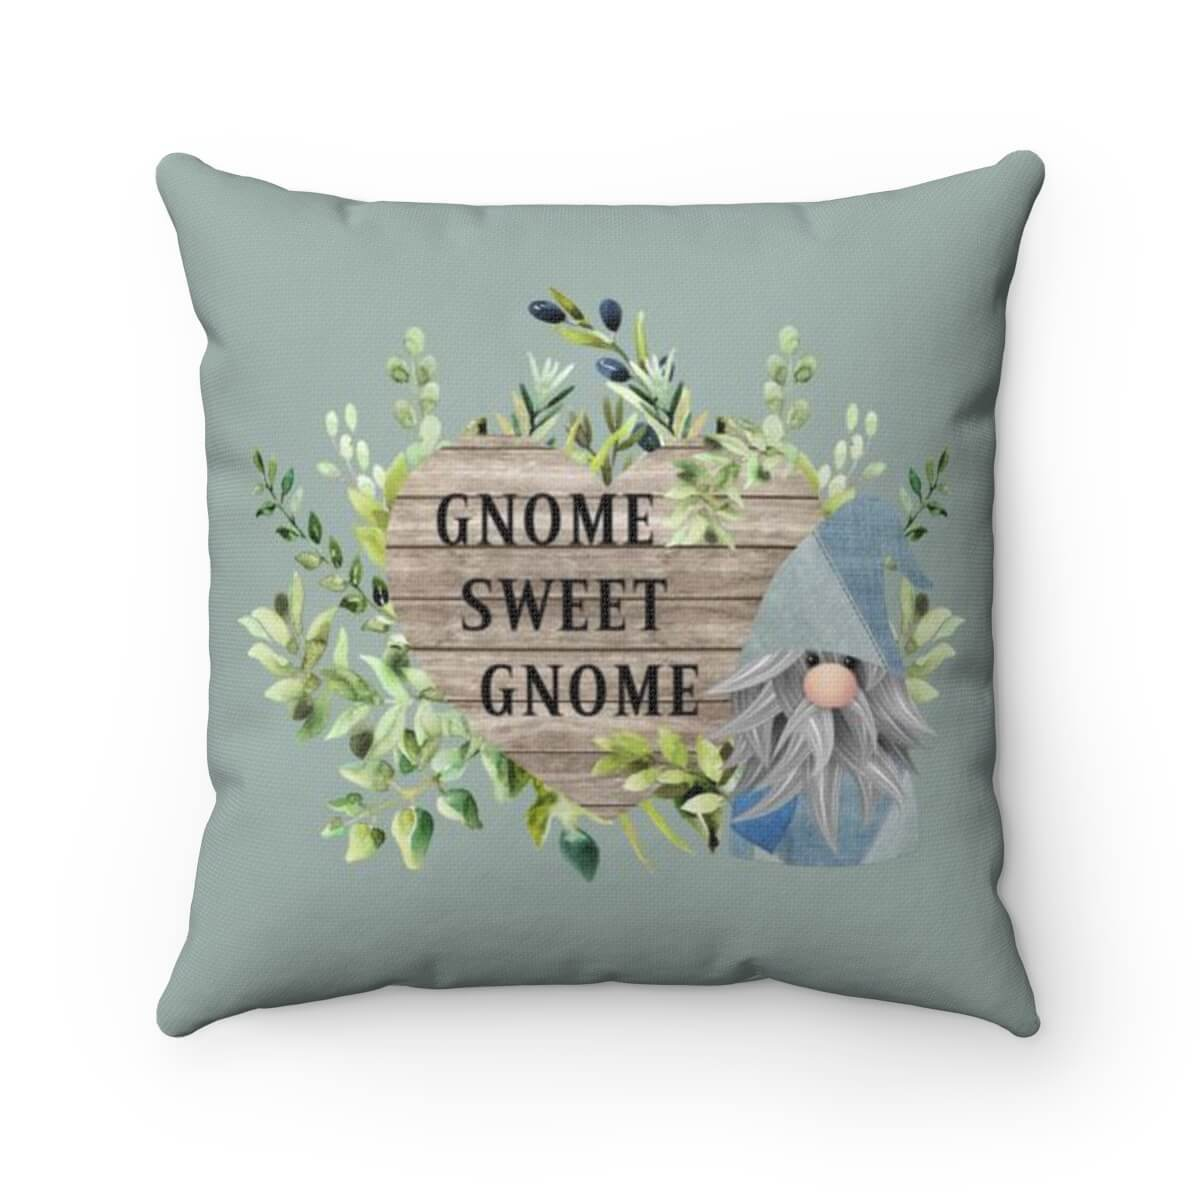 Gnome Sweet Gnome - Pillow